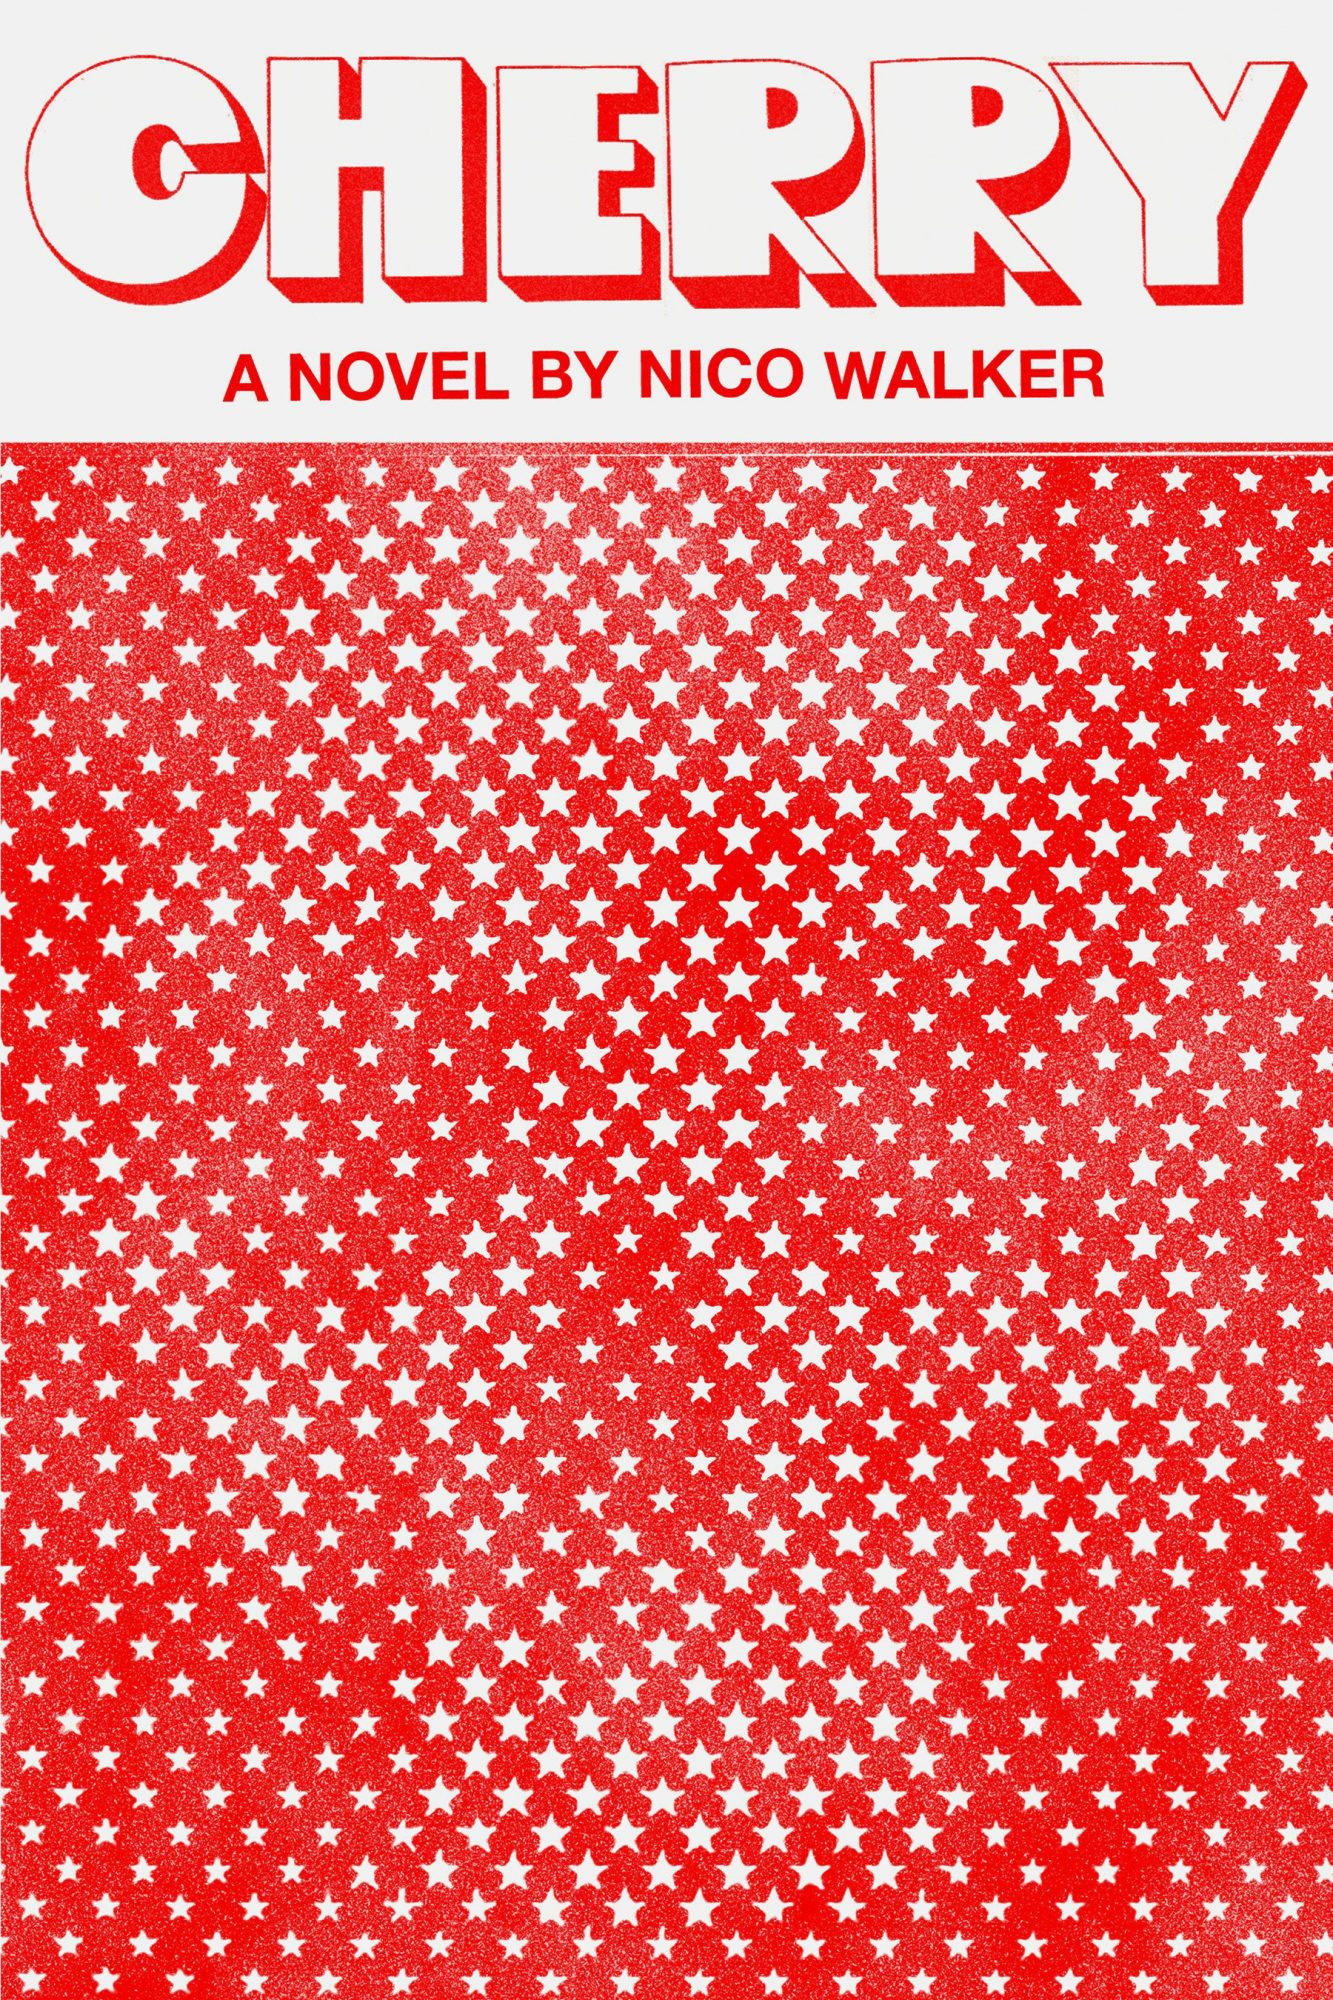 Cherry: A novel  by Nico Walker Knopf